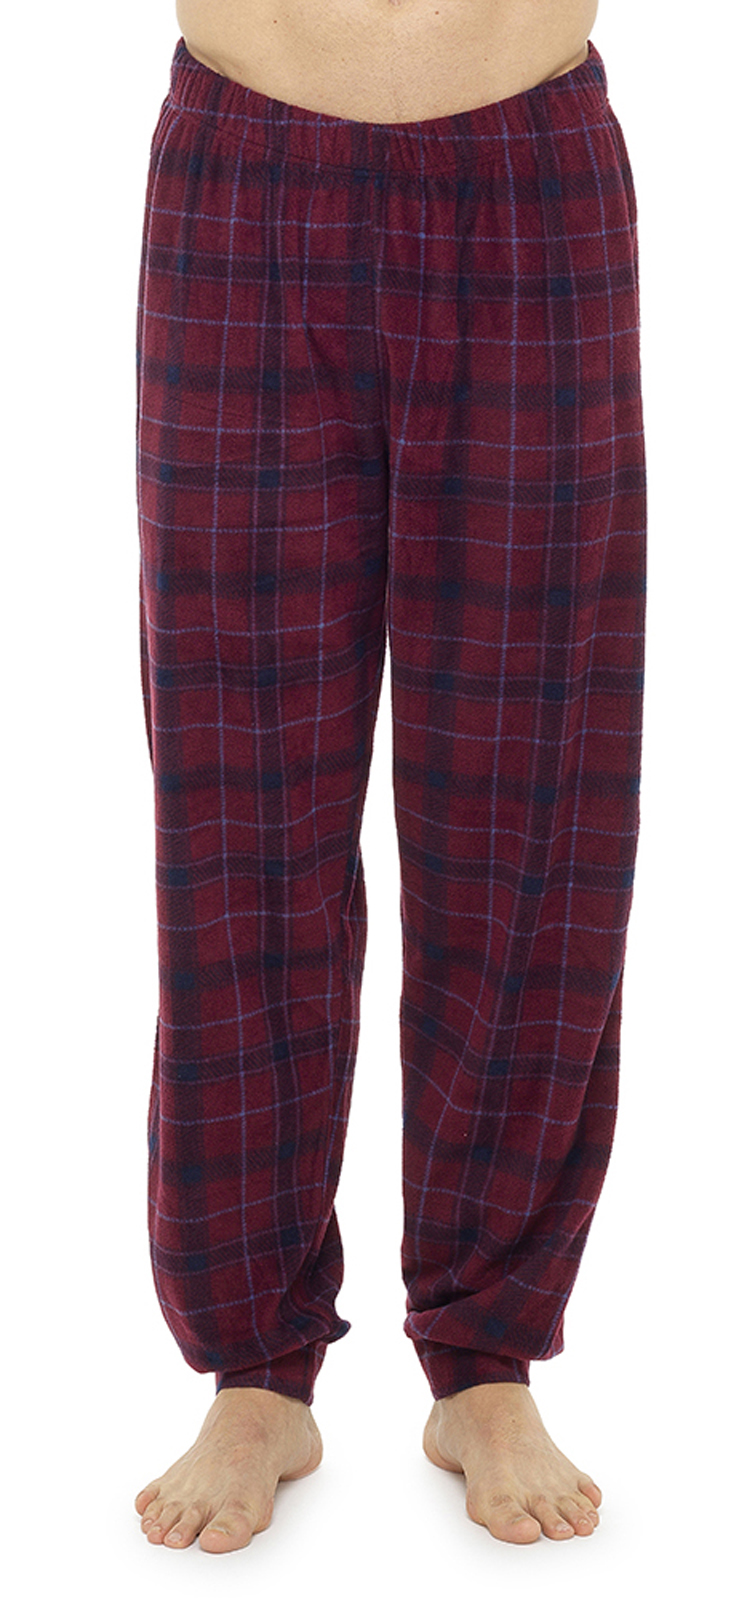 Online shopping for Pyjama Bottoms from a great selection at Clothing Store. i-Smalls Mens Classic Checked and Space Polar Fleece Lounge Wear Pyjama Trouser Bottoms. £ - £ Prime. out of 5 stars Batman Mens Batman Lounge Pants. £ Prime. out of 5 stars